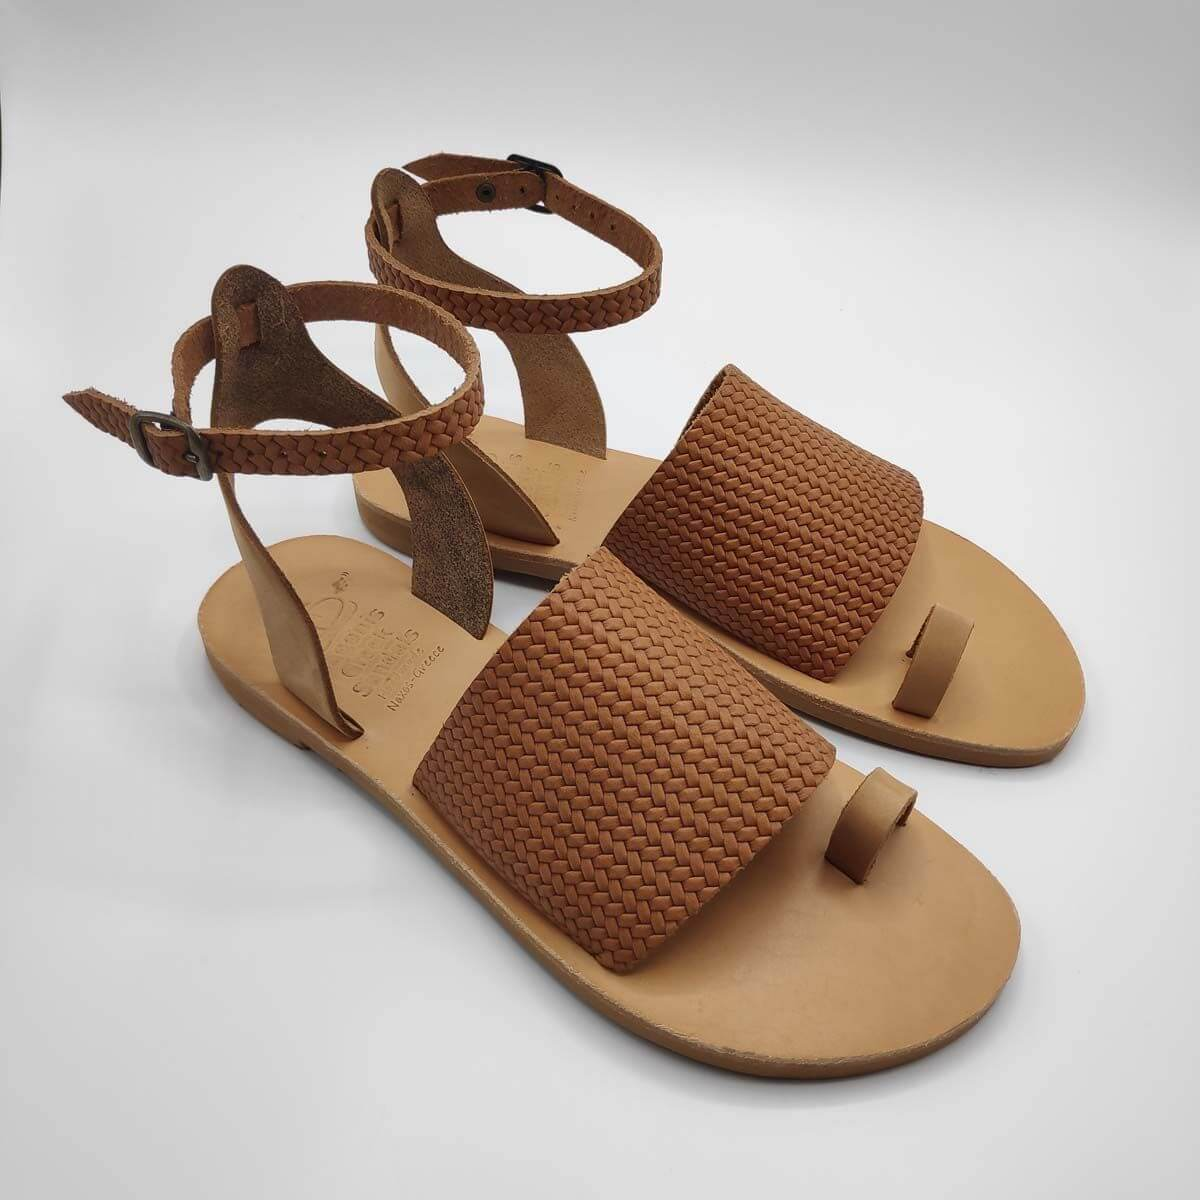 Brown Leather Sandals with ankle strap